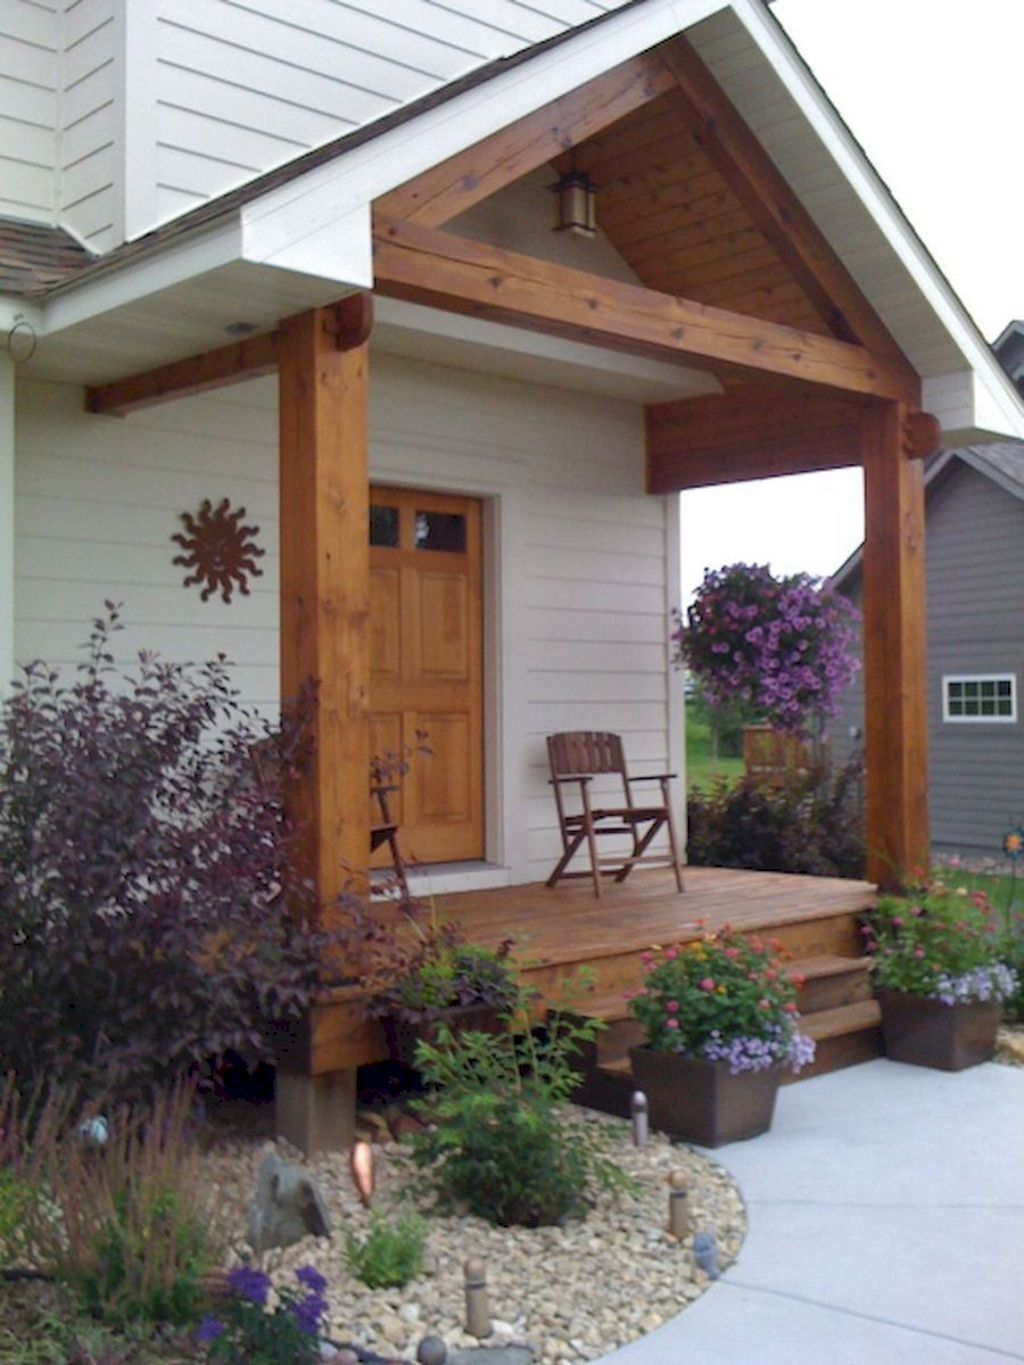 41 Awesome Small Front Porch Design Ideas Abchomy Front Porch Design Rustic Porch Porch Design